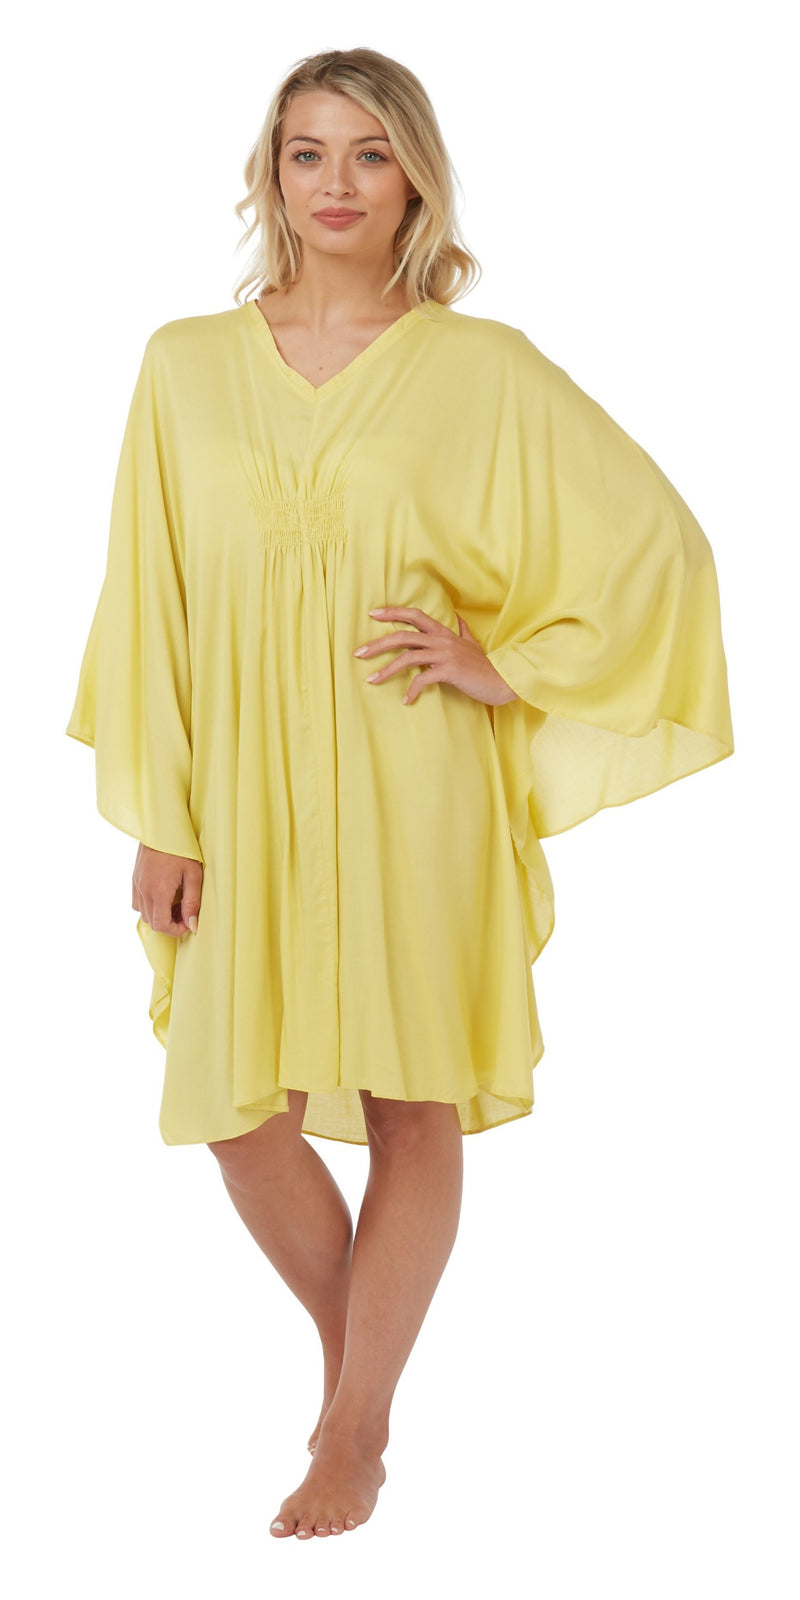 Women's Cotton Kaftan Nightwear Lounger One Size, Lemon Yellow ,Kaftan,